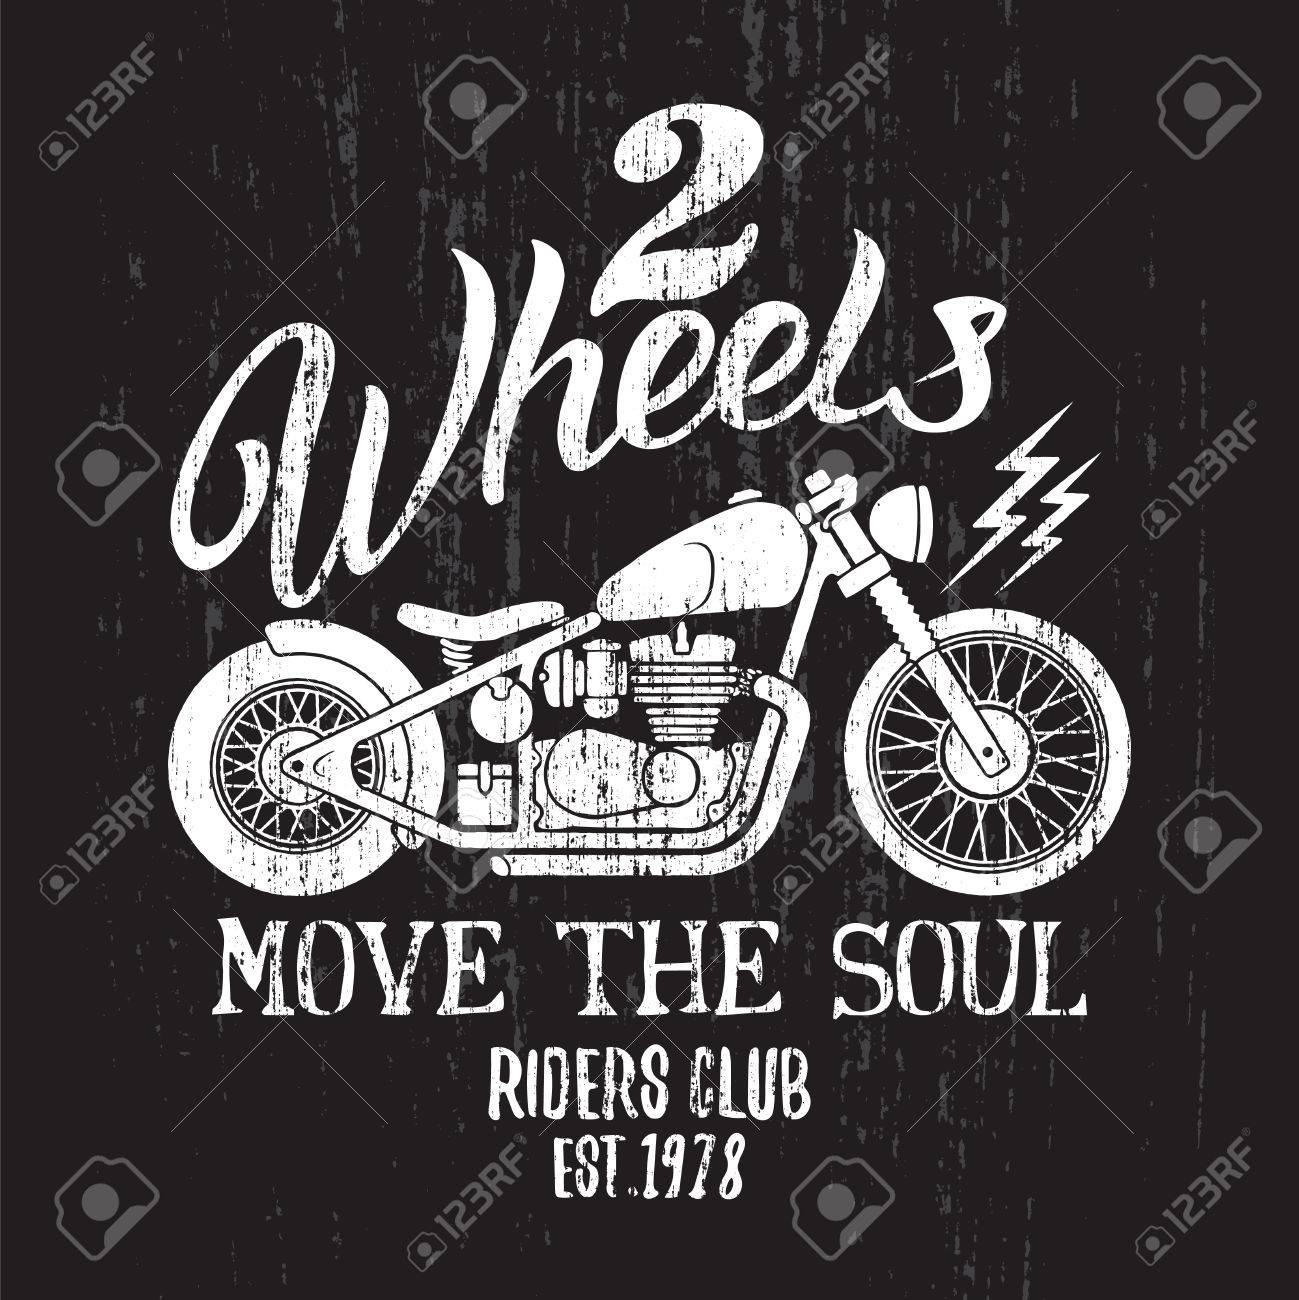 af7e23c24 Custom Motorcycle t-shirt graphic. Vintage typography design for tee or  apparel. Stock